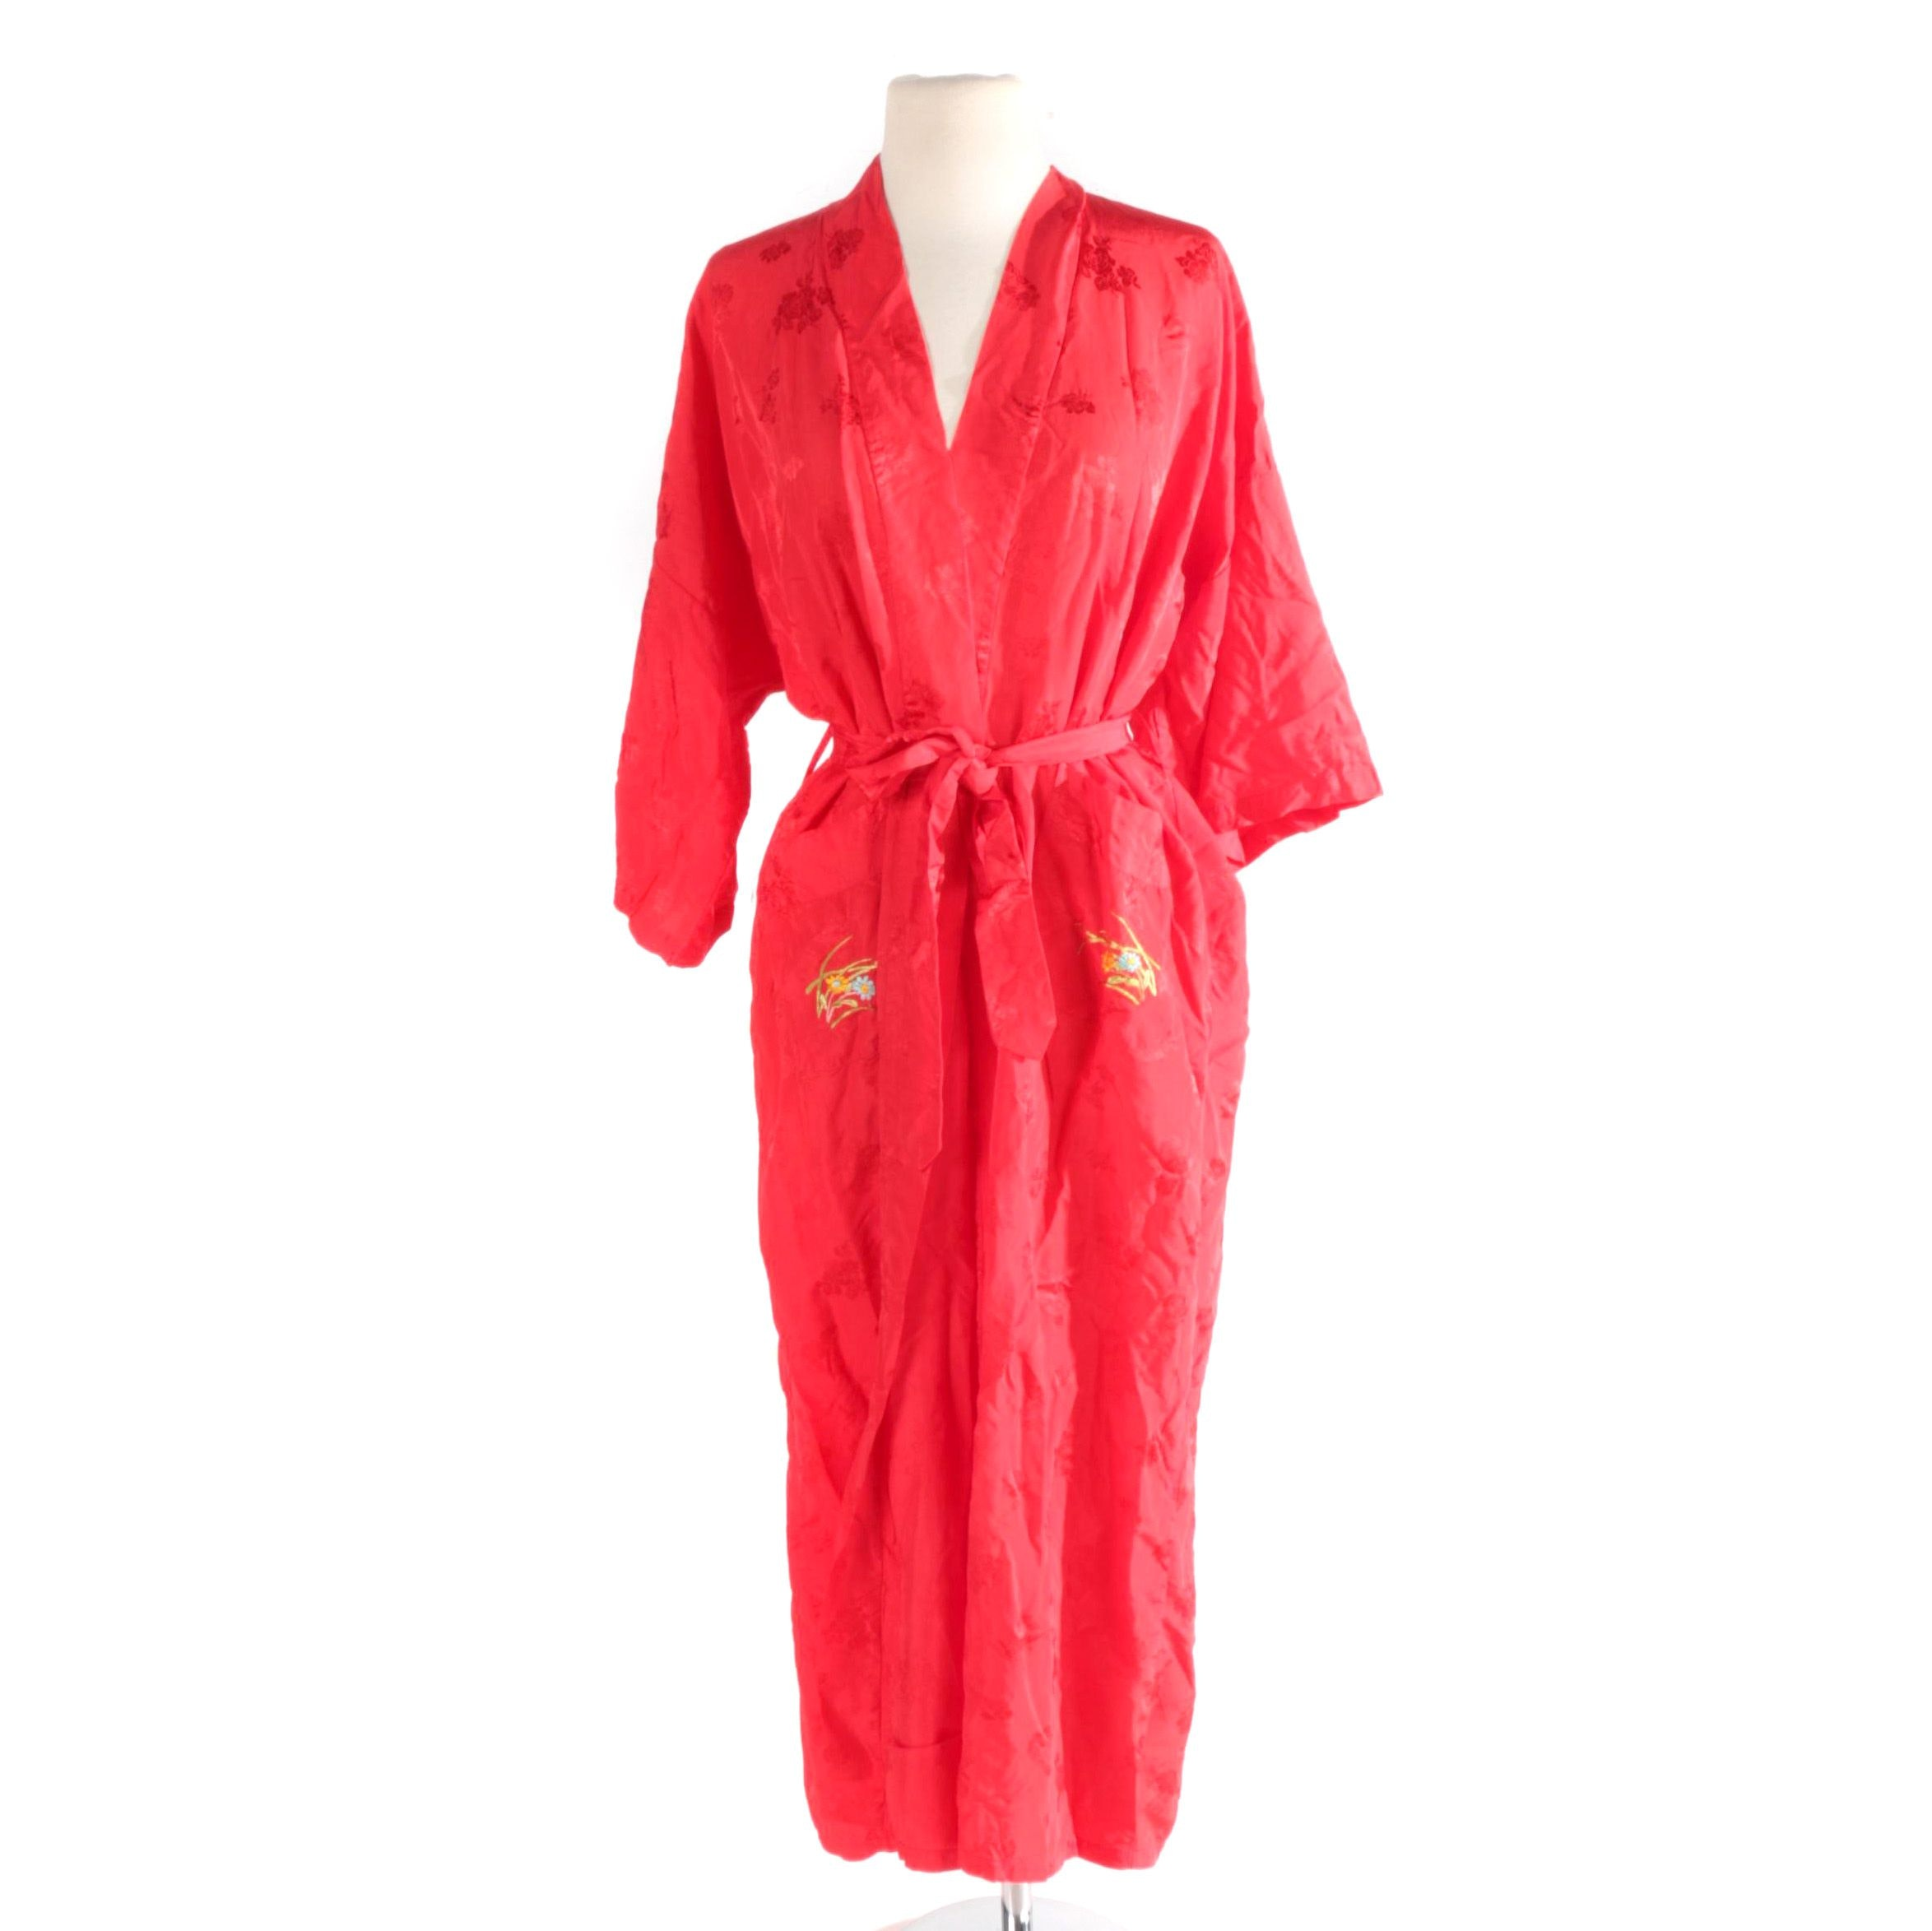 Vintage Chinese Red Brocade Robe with Embroidery